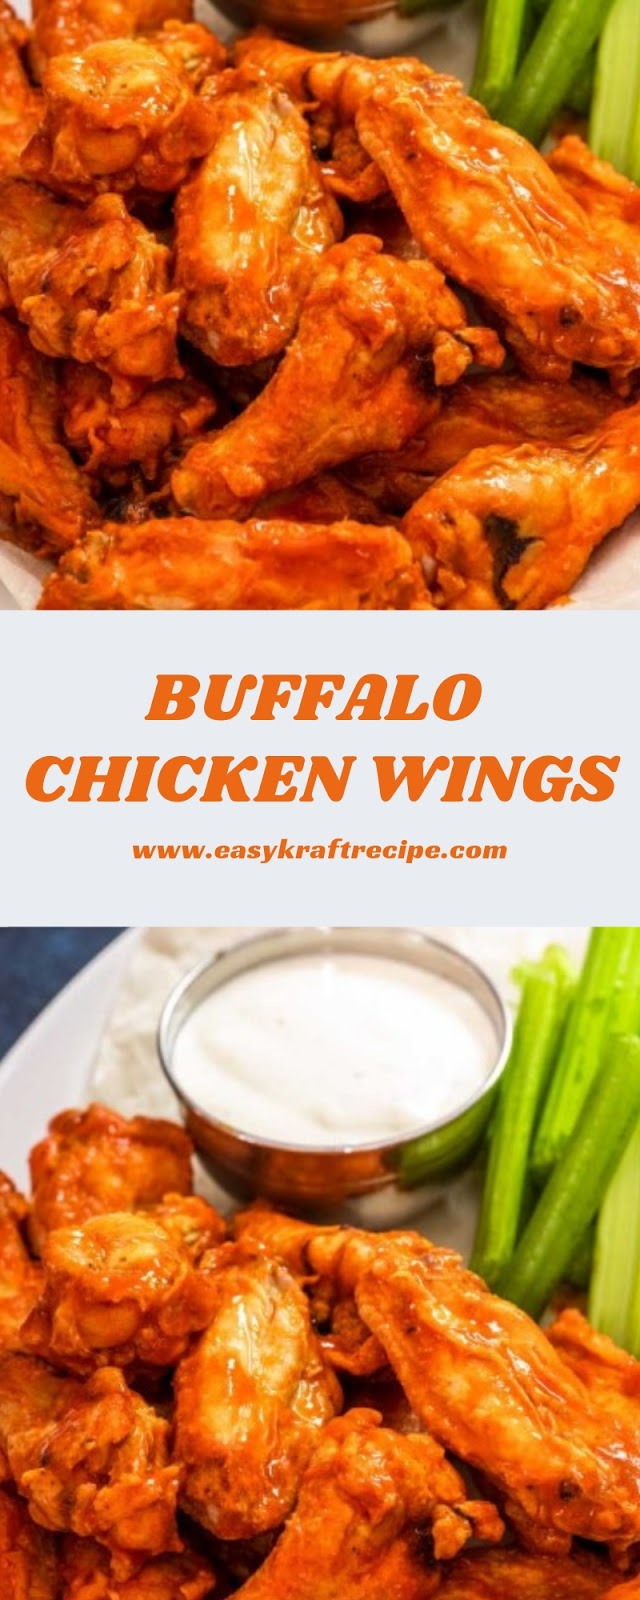 BUFFALO CHICKEN WINGS